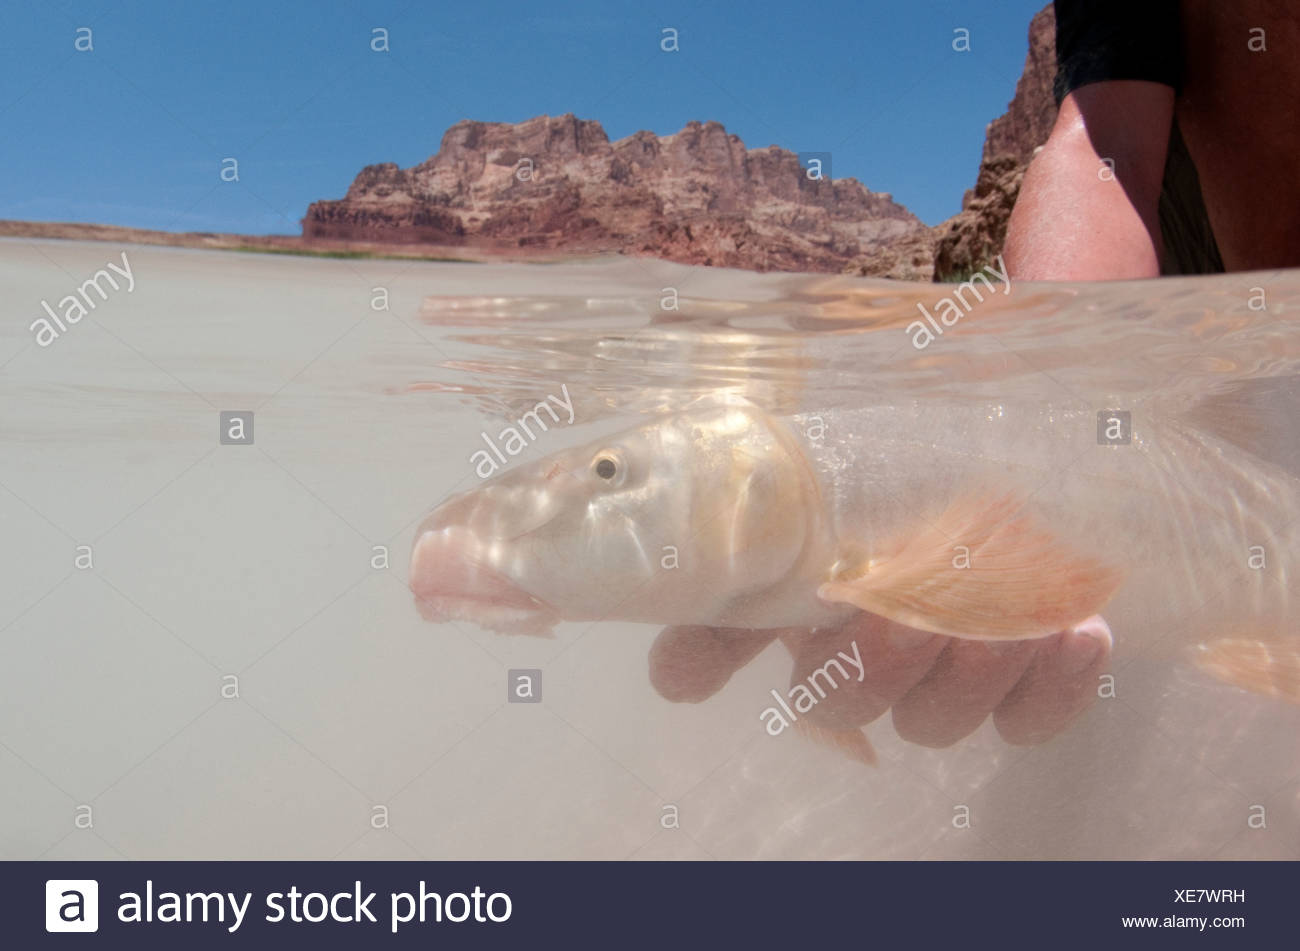 A USGS biologists holds a flannelmouth sucker underwater. - Stock Image